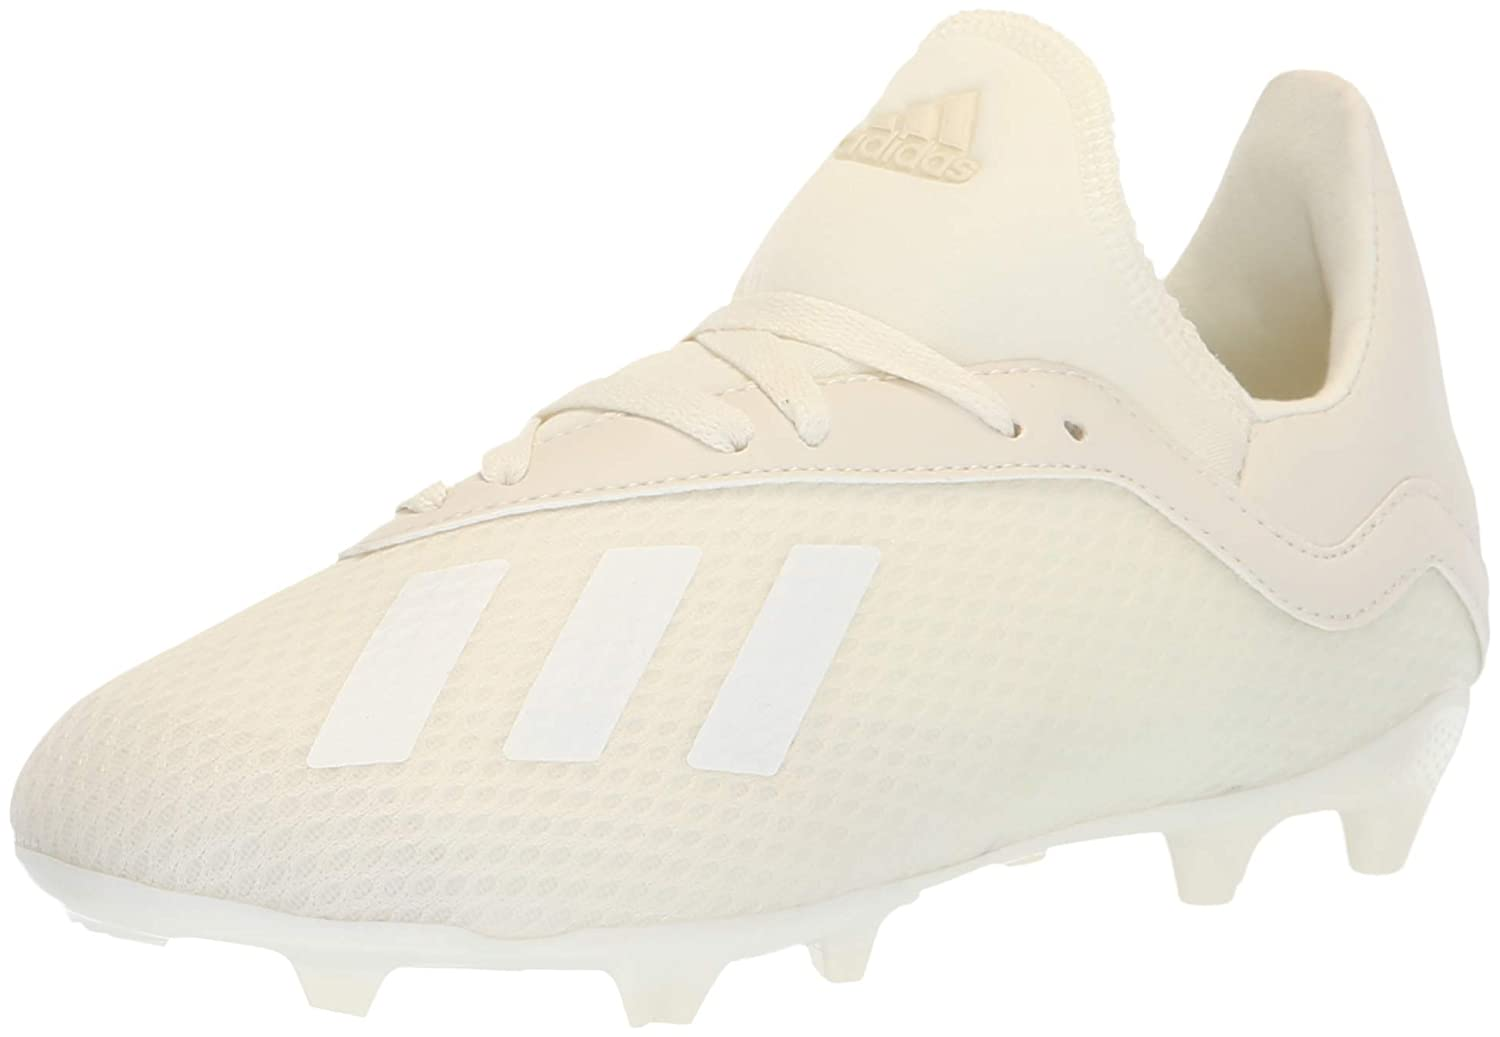 e8aa91b8460 adidas Unisex X 18.3 Firm Ground Soccer Shoe